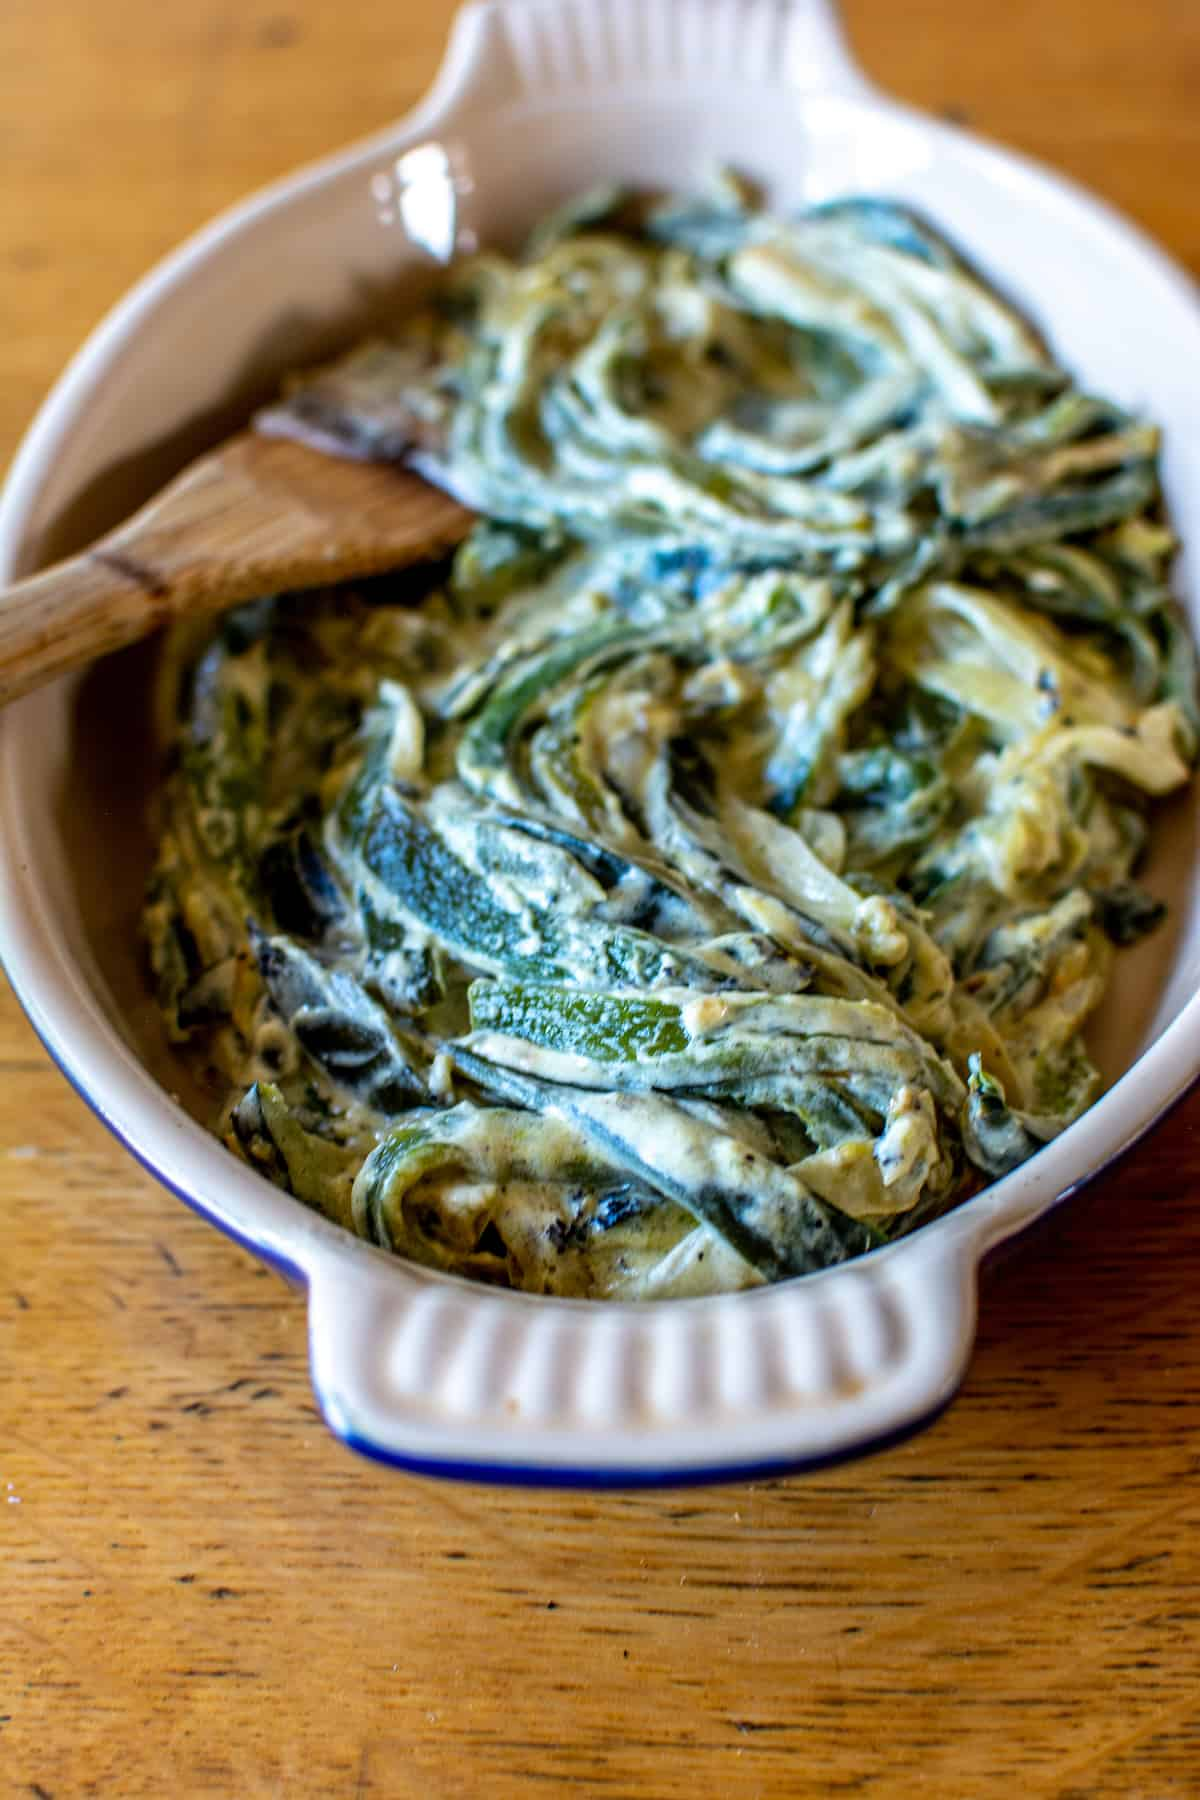 A close up of Rajas con Crema or roasted strips of poblano pepper with onions and cream.